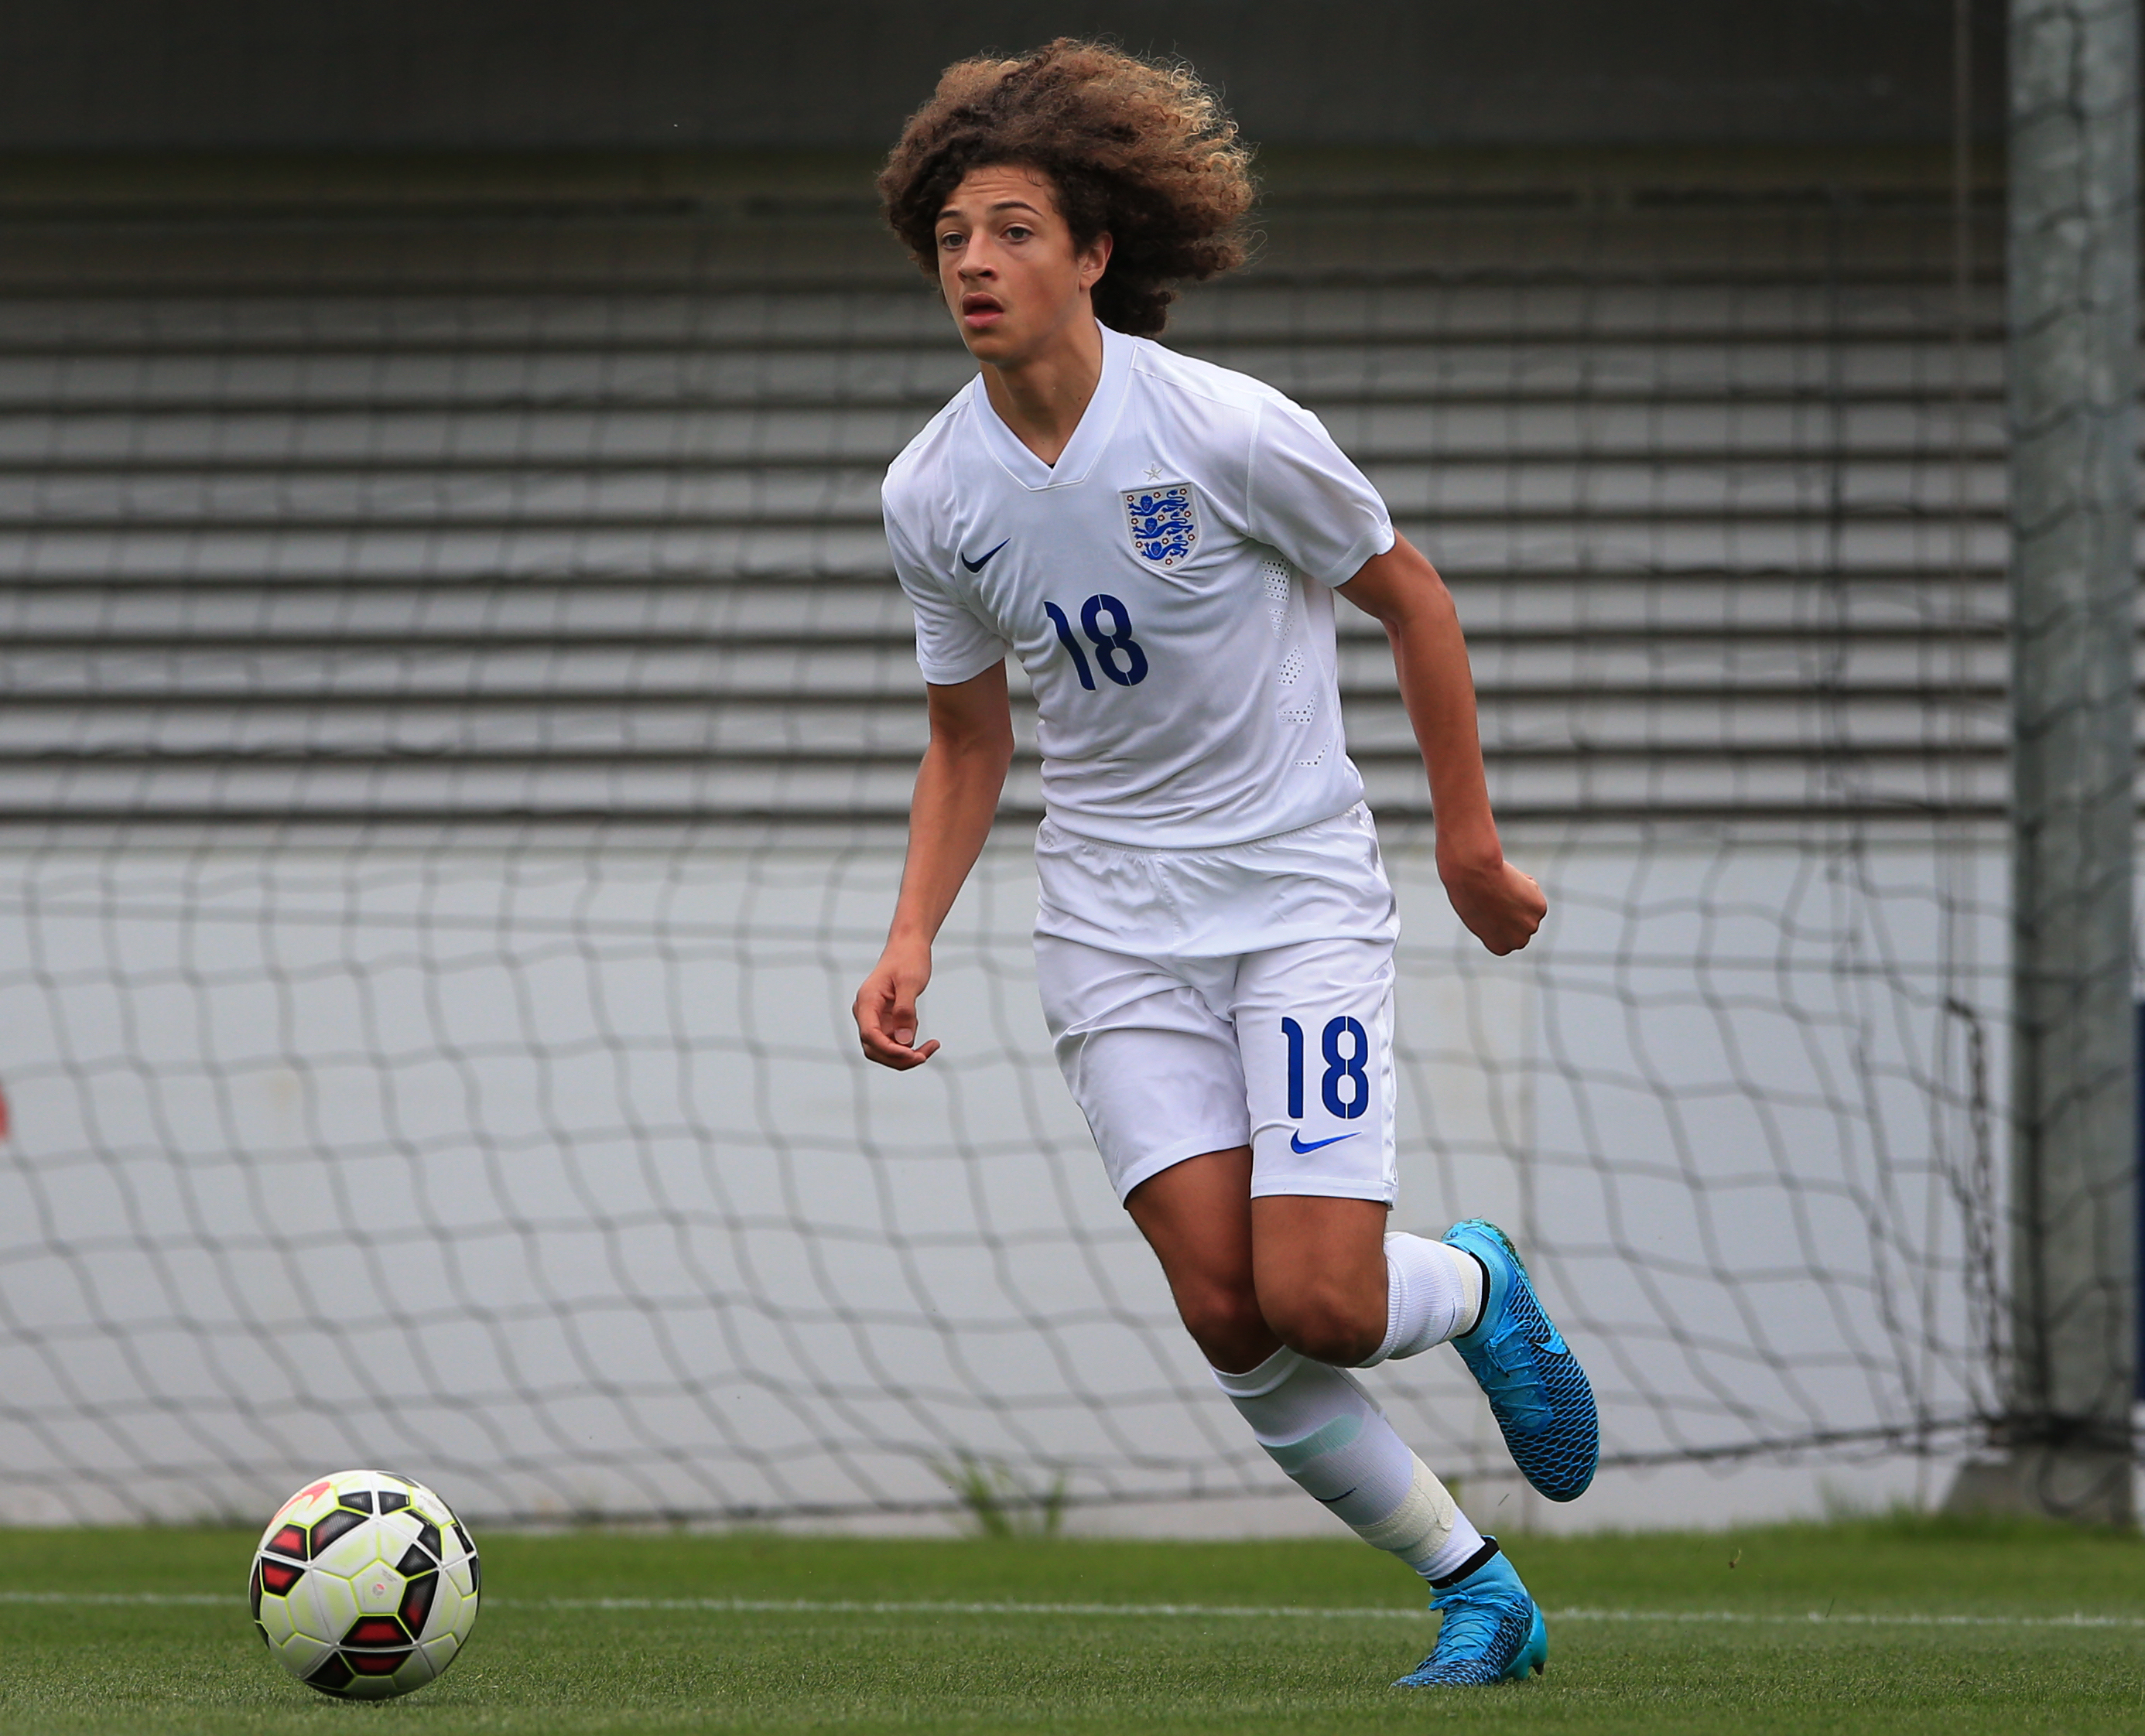 Ampadu playing for the young England team. Image: PA Images